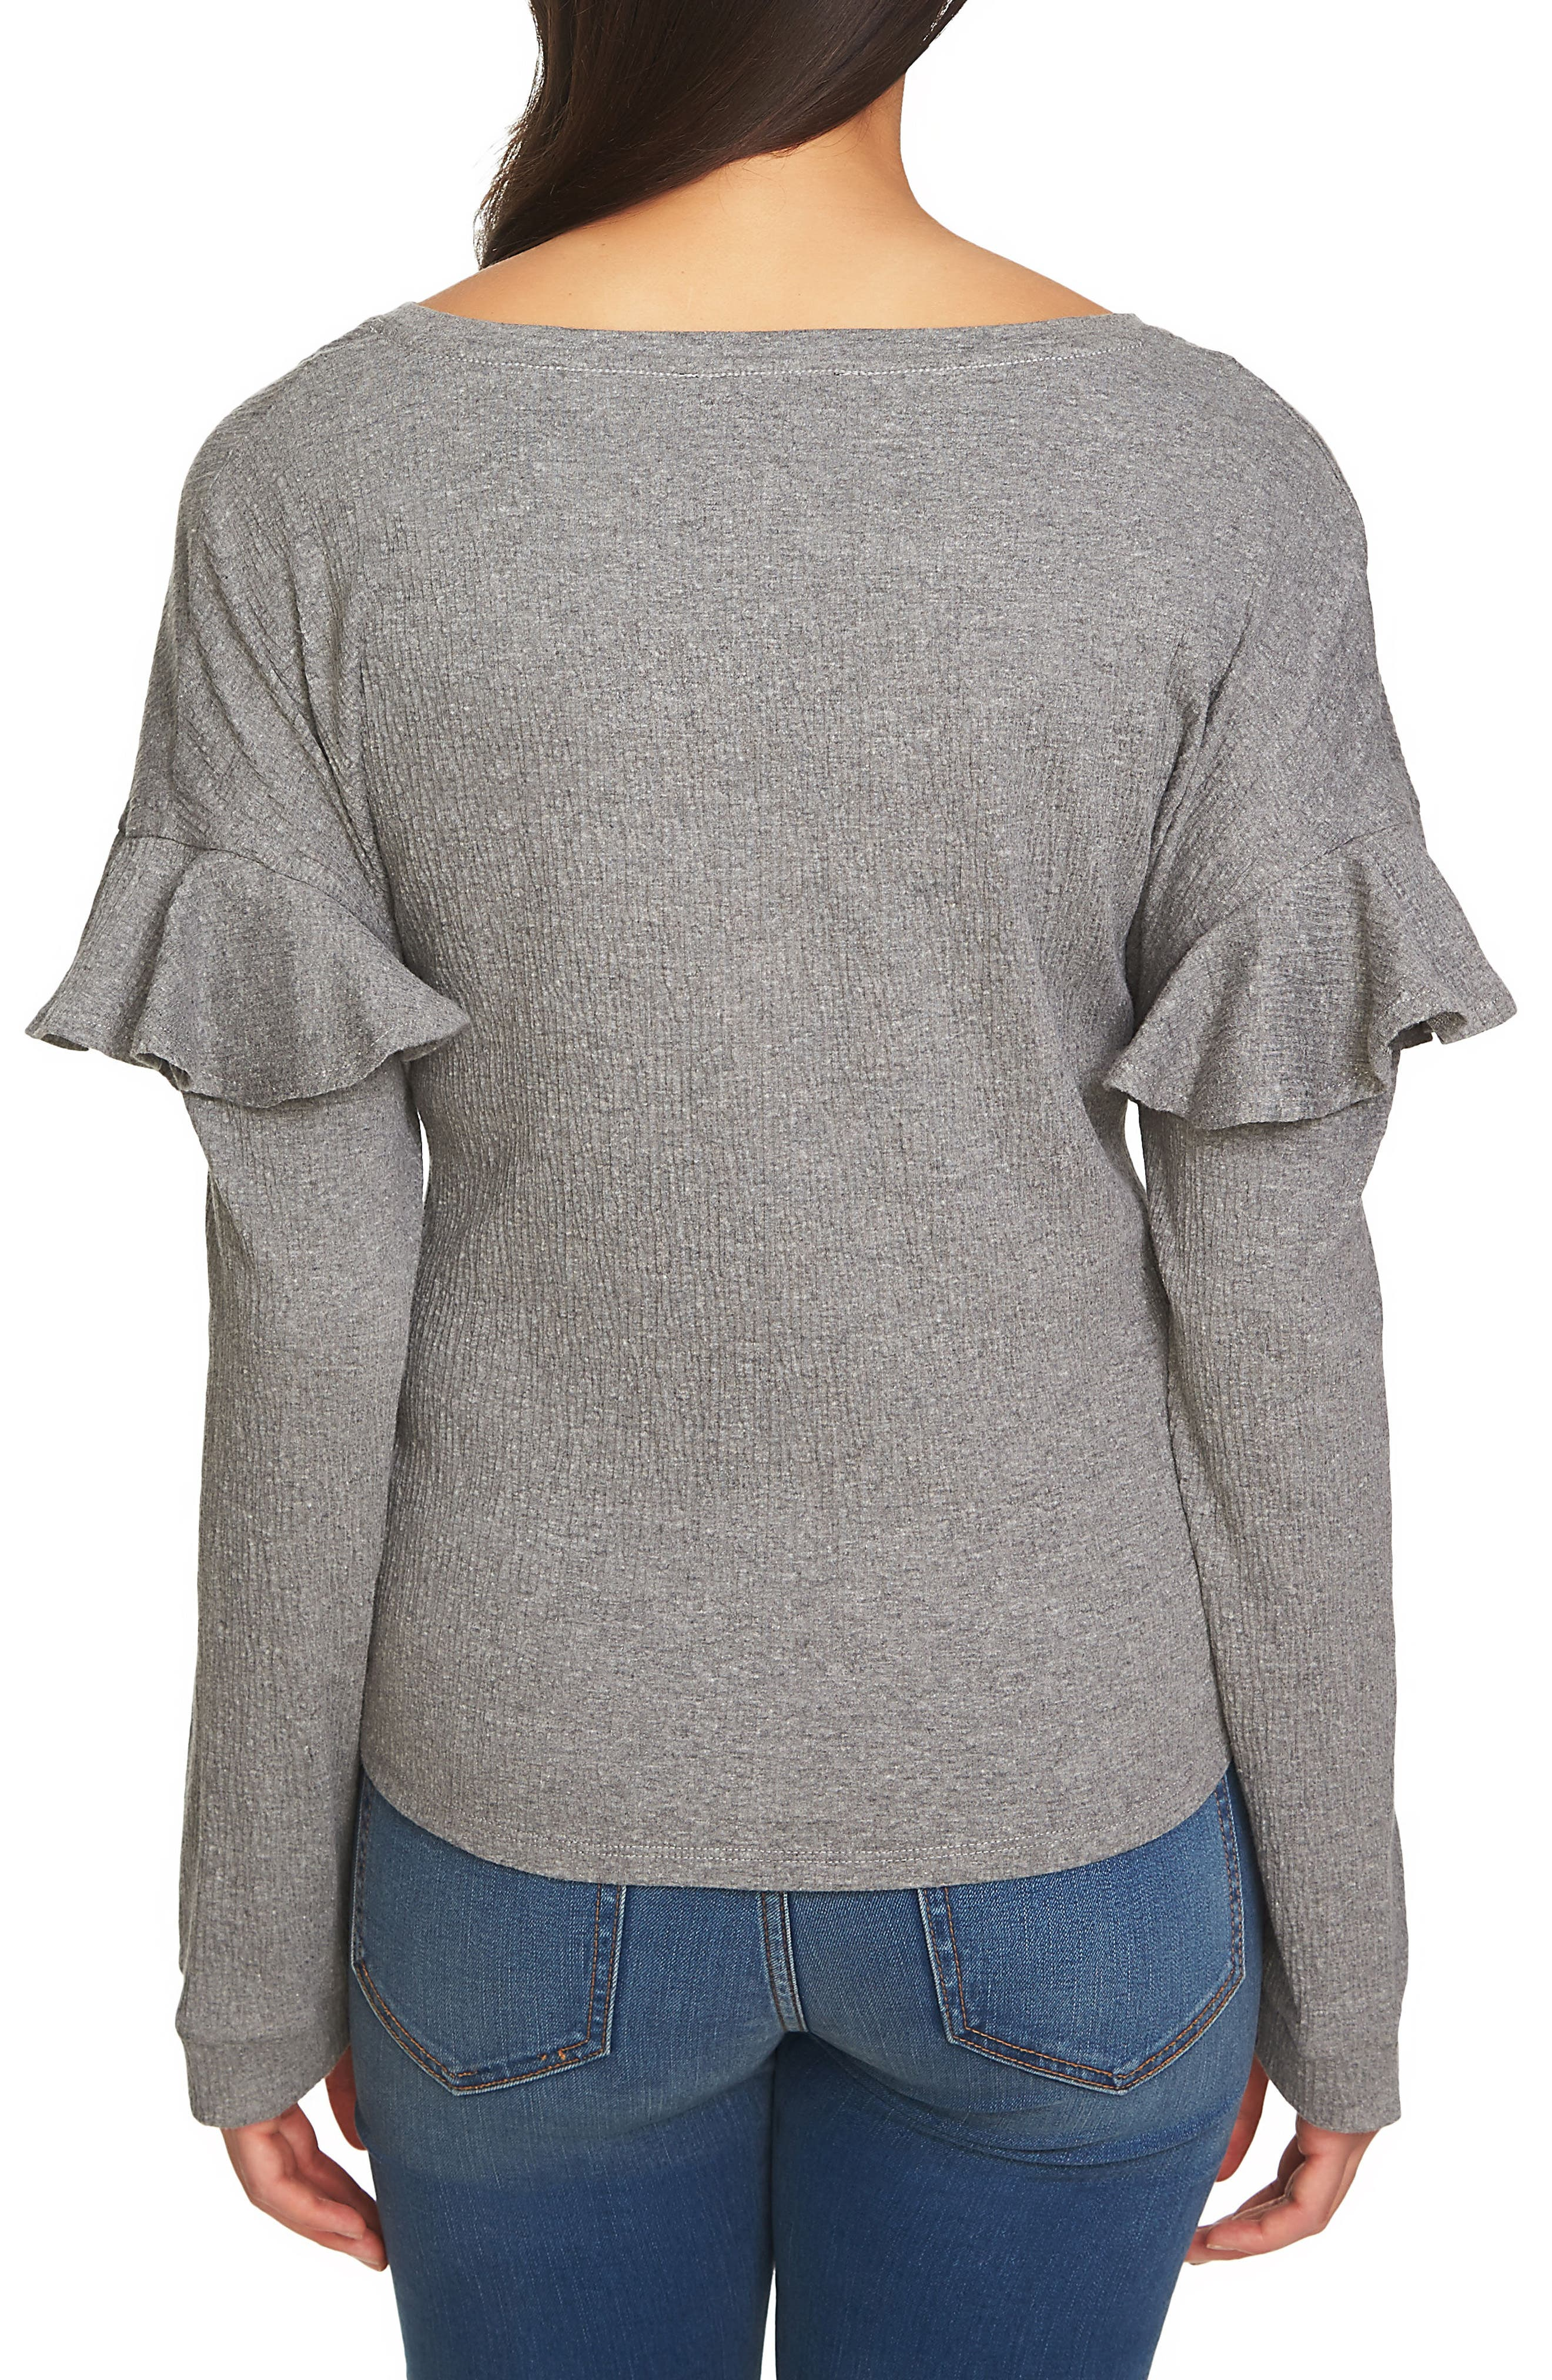 Tie Front Knit Top,                             Alternate thumbnail 2, color,                             Light Heather Grey